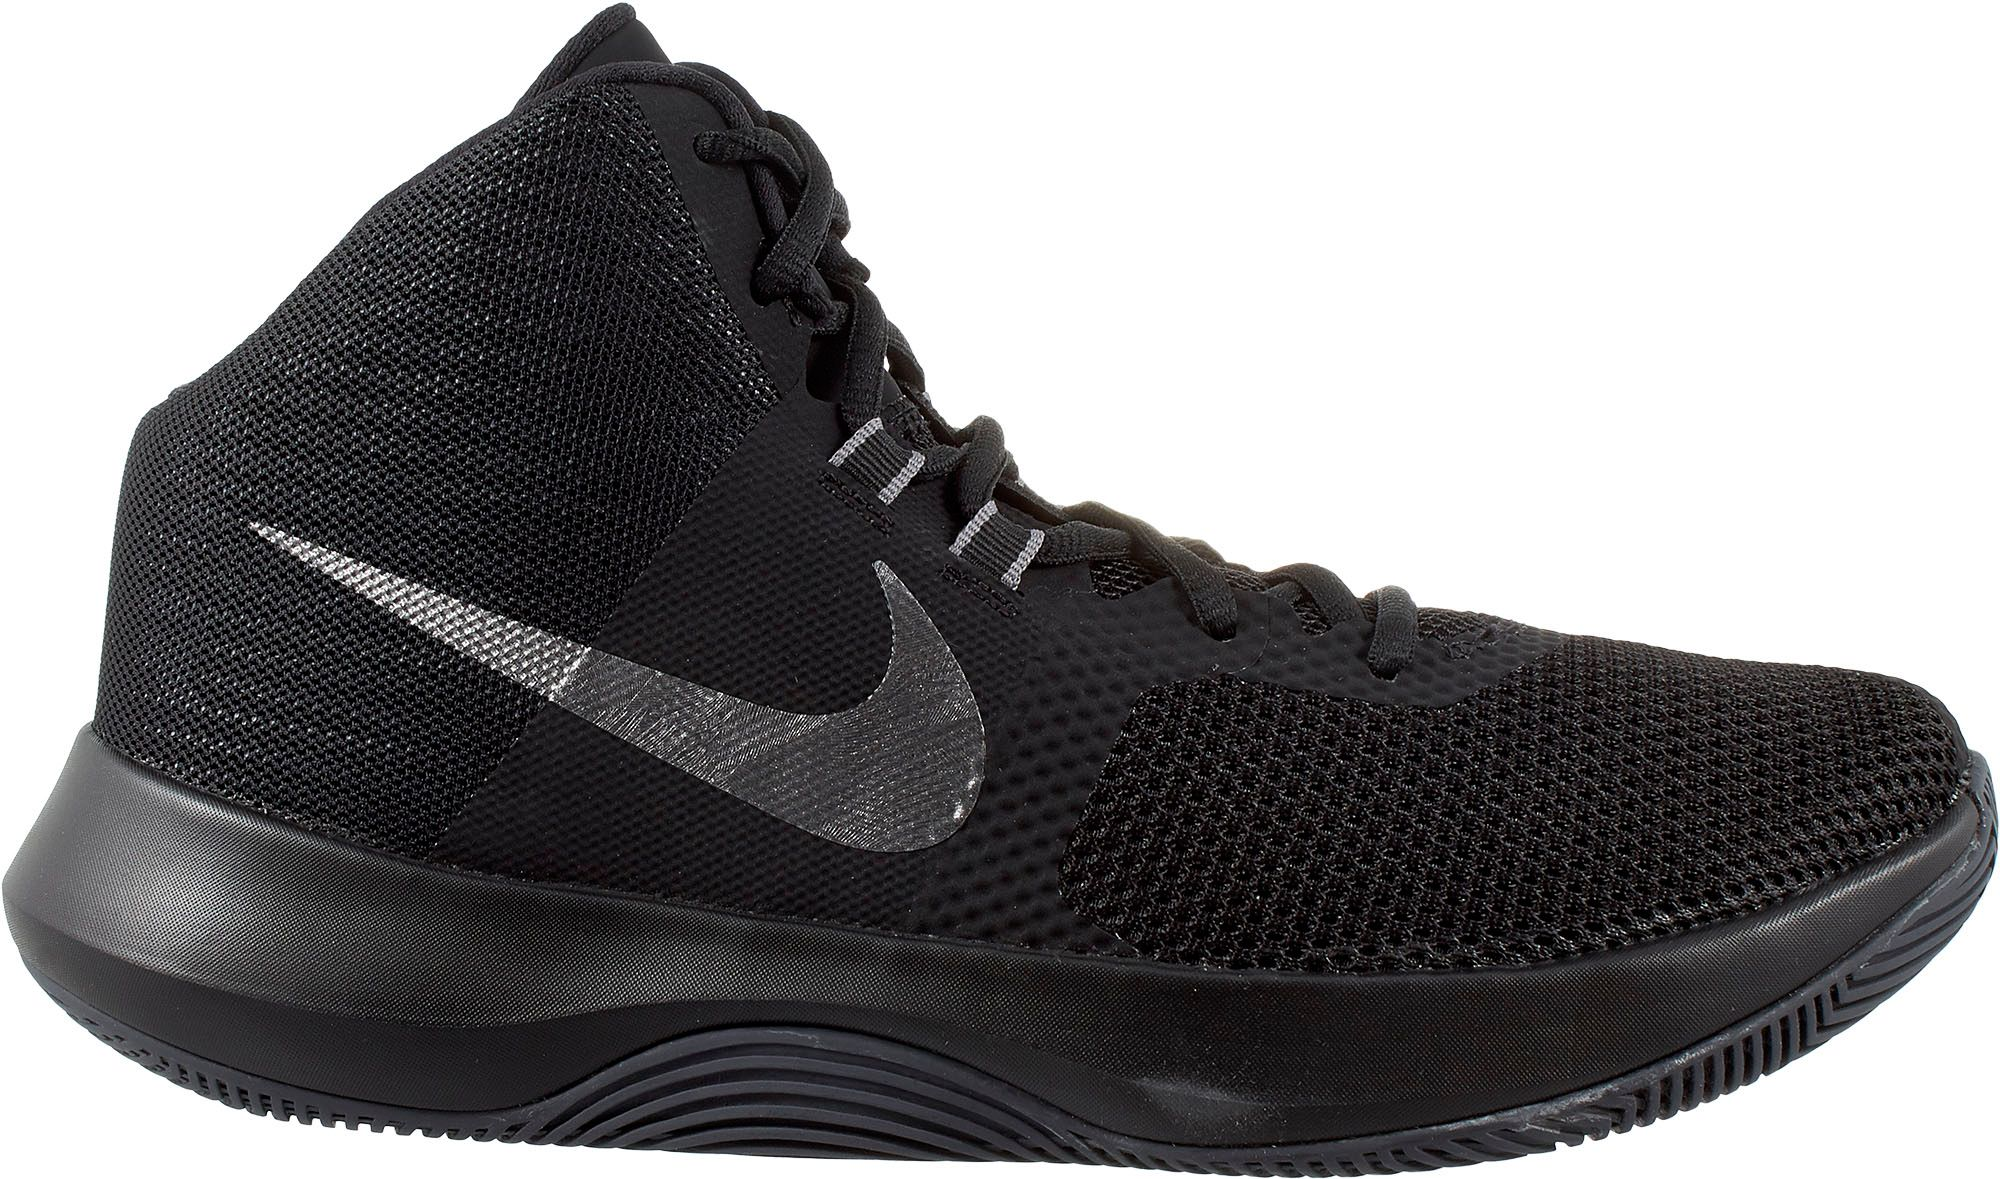 Promotions Nike Basketball Shoes Men's Silver/Black-White M4820866